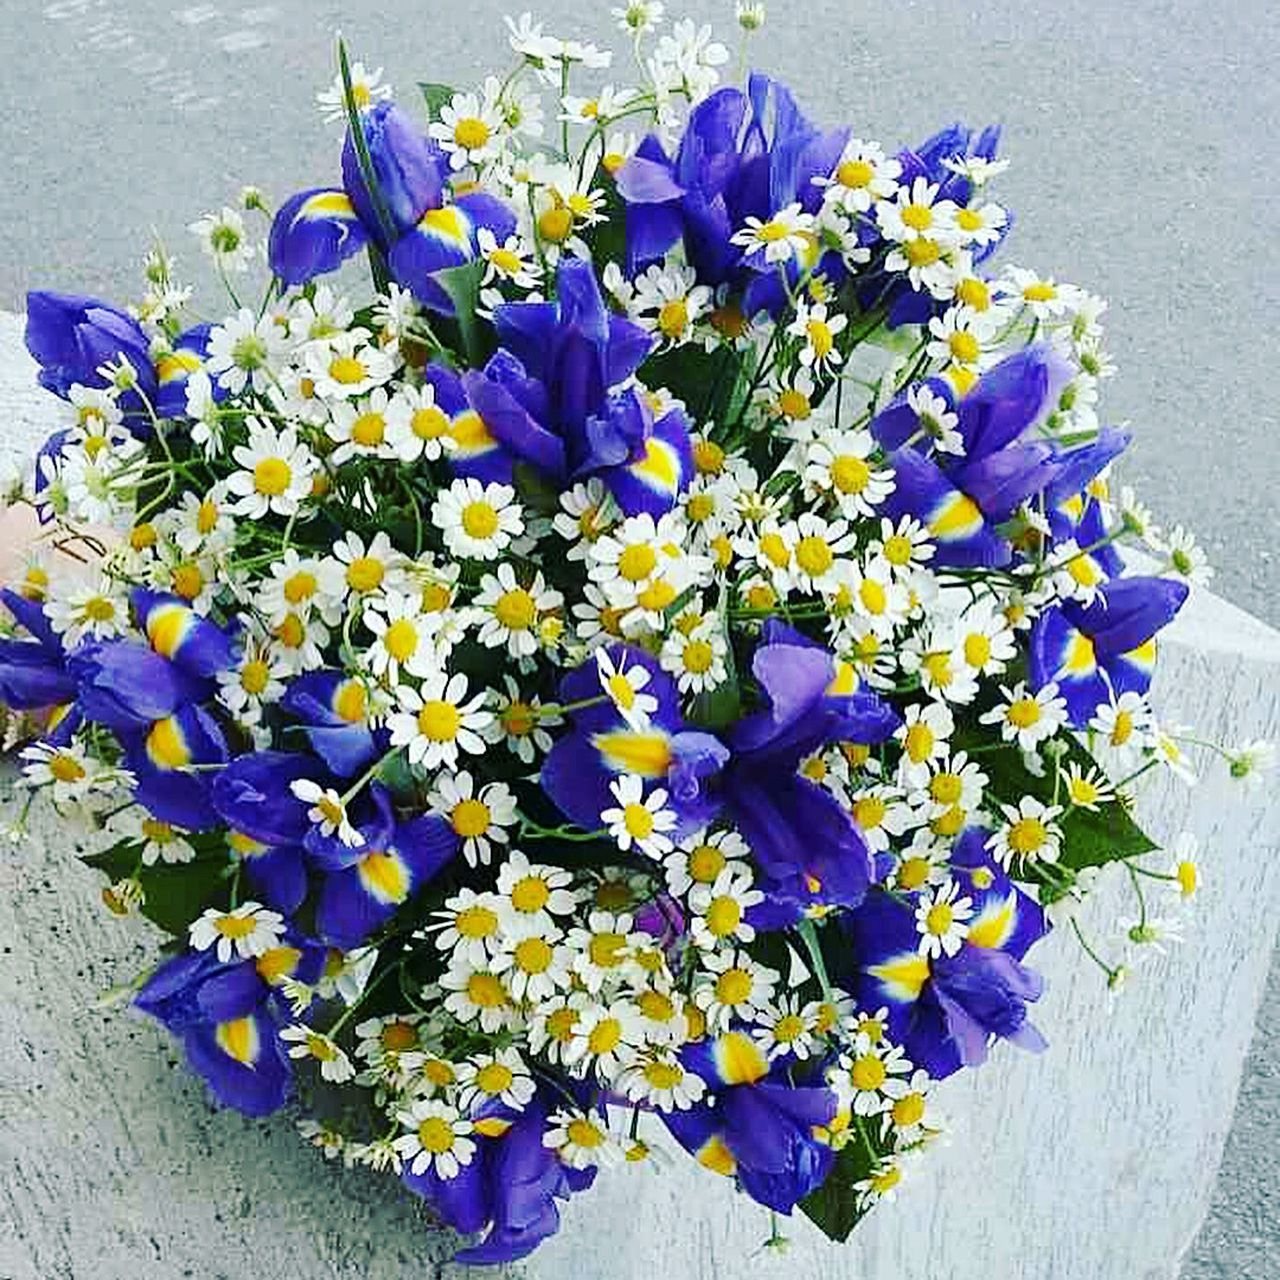 flower, purple, petal, fragility, growth, nature, beauty in nature, freshness, high angle view, no people, flower head, pansy, day, plant, outdoors, yellow, blooming, blue, close-up, crocus